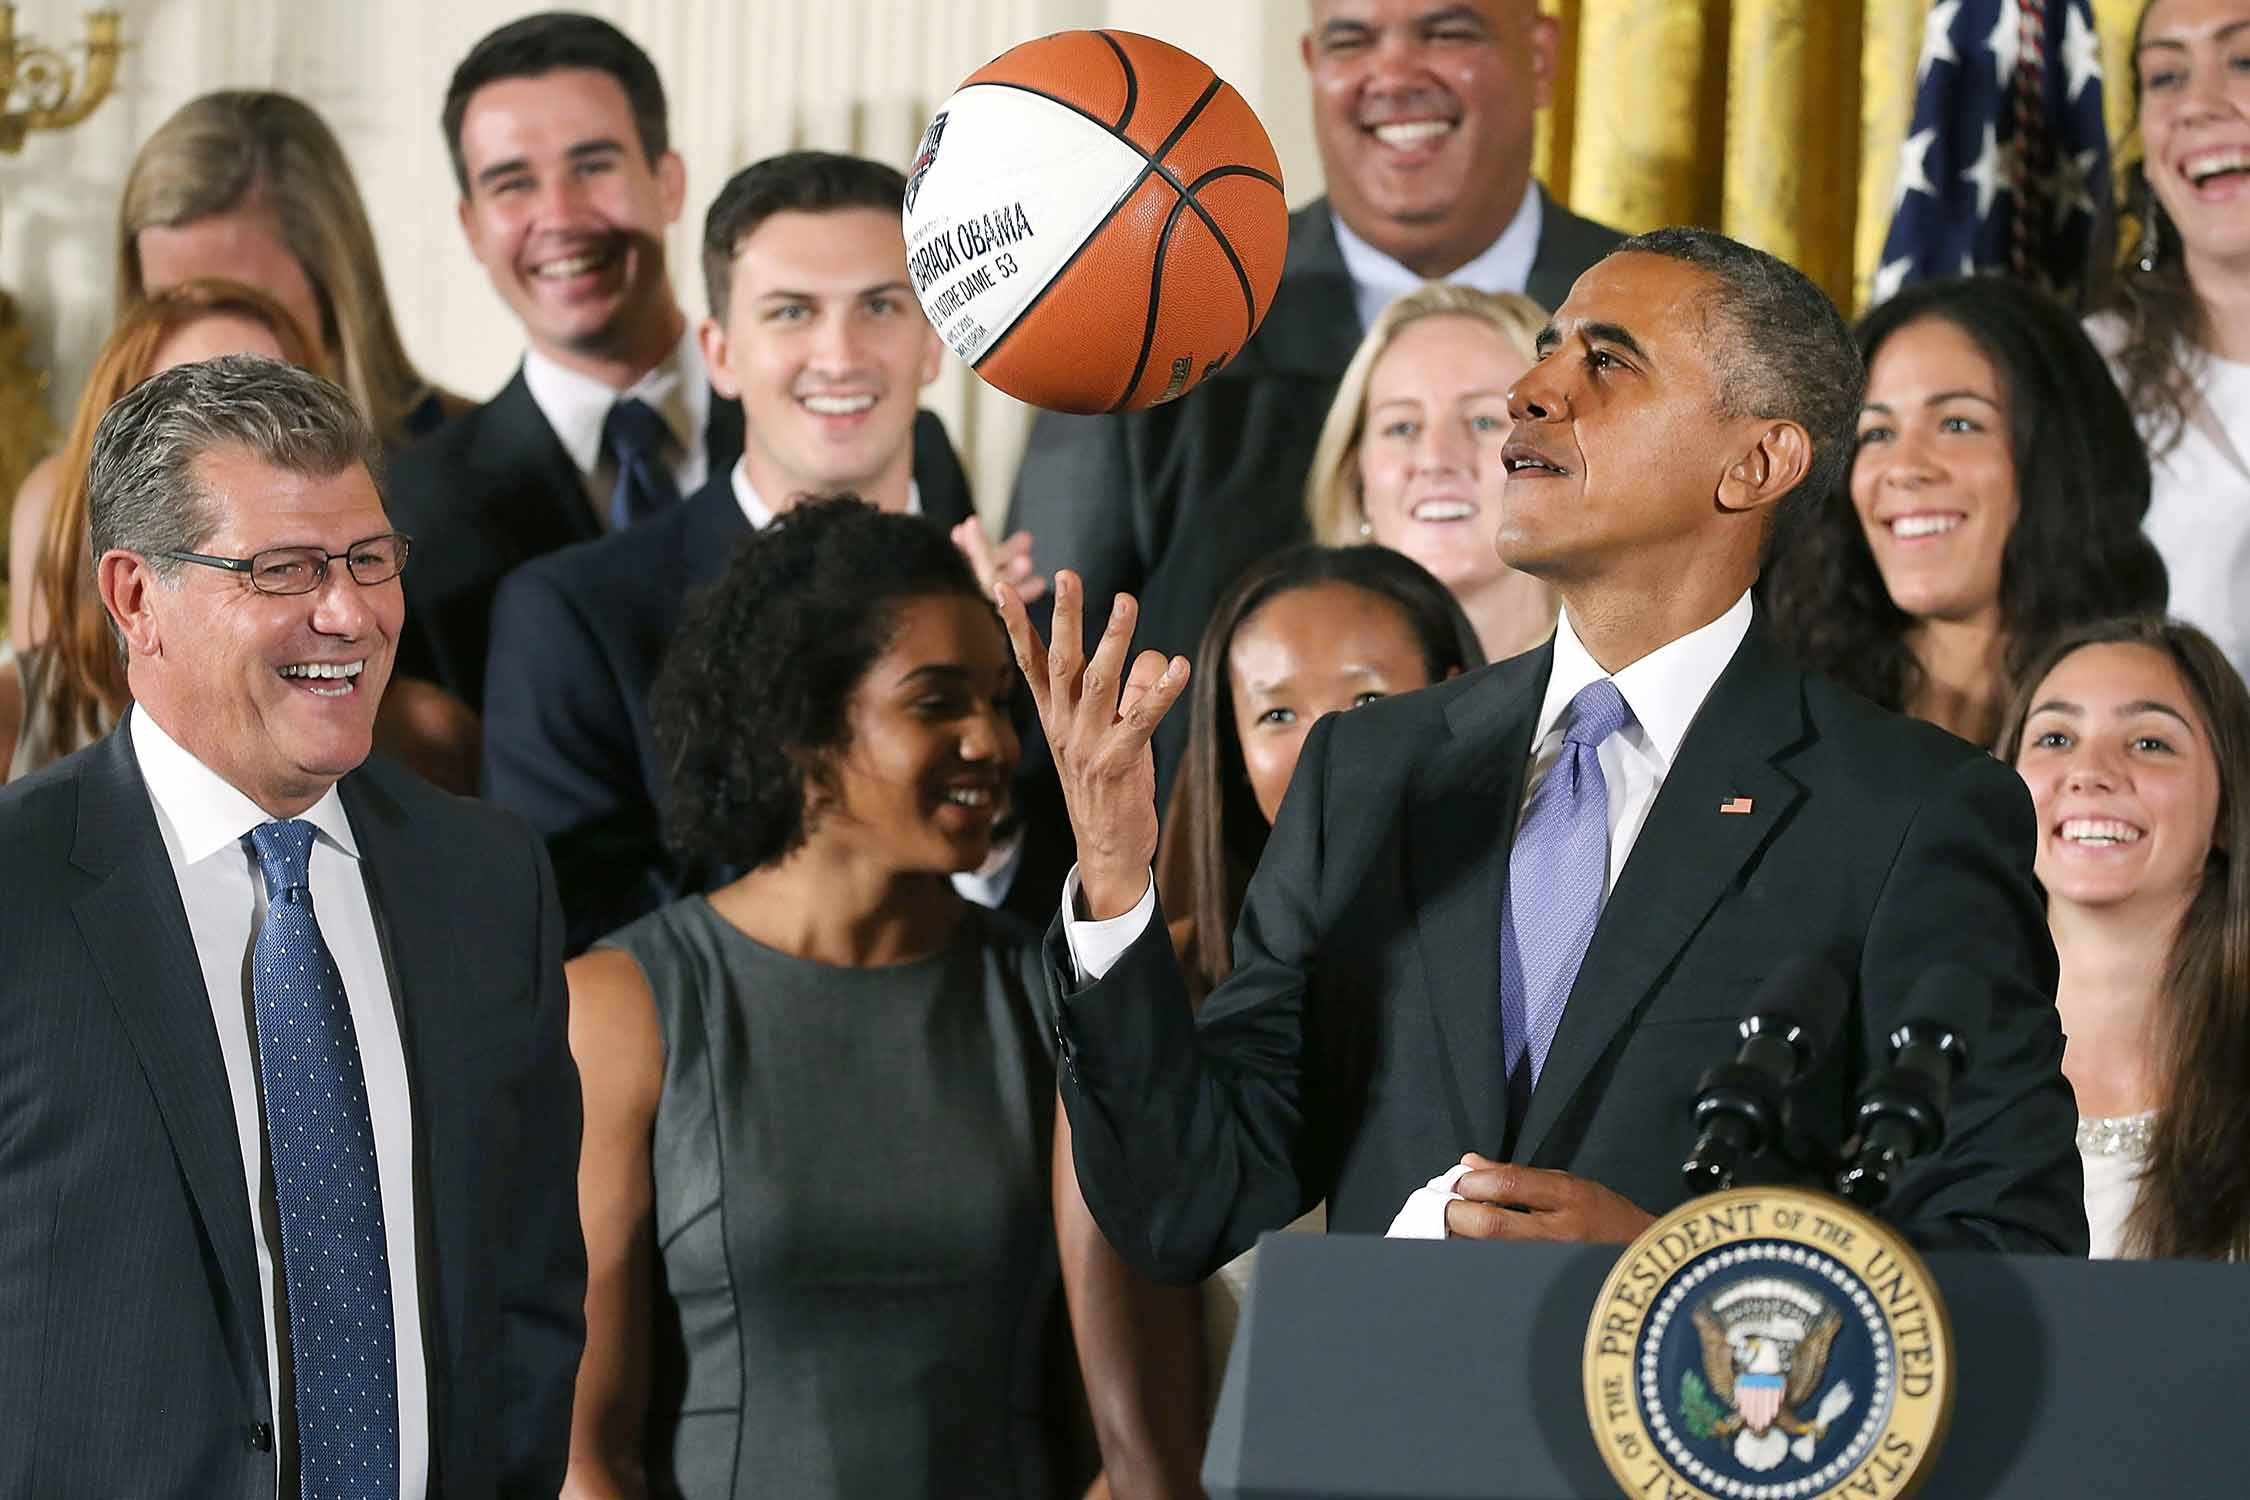 President Barack Obama shows off some of his ball skills to Geno Auriemma and the UConn's women's basketball team in 2015.